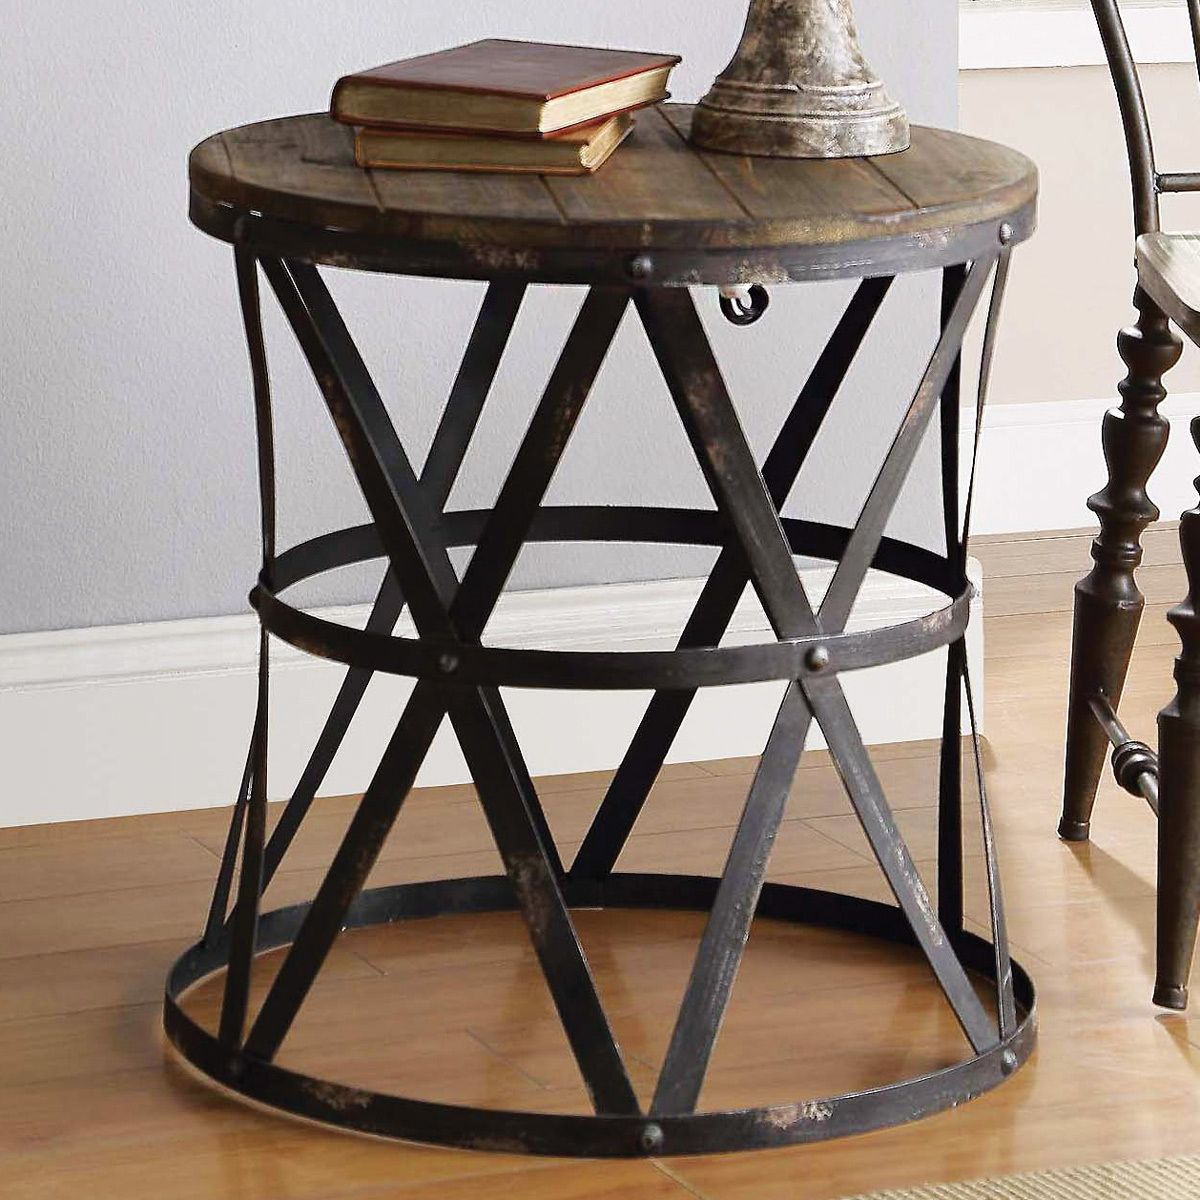 50 Small Round End Table Cheap Modern Furniture Design Check More At Http Www Nikki Rustic End Tables Rustic Side Table Rustic Modern Side Table